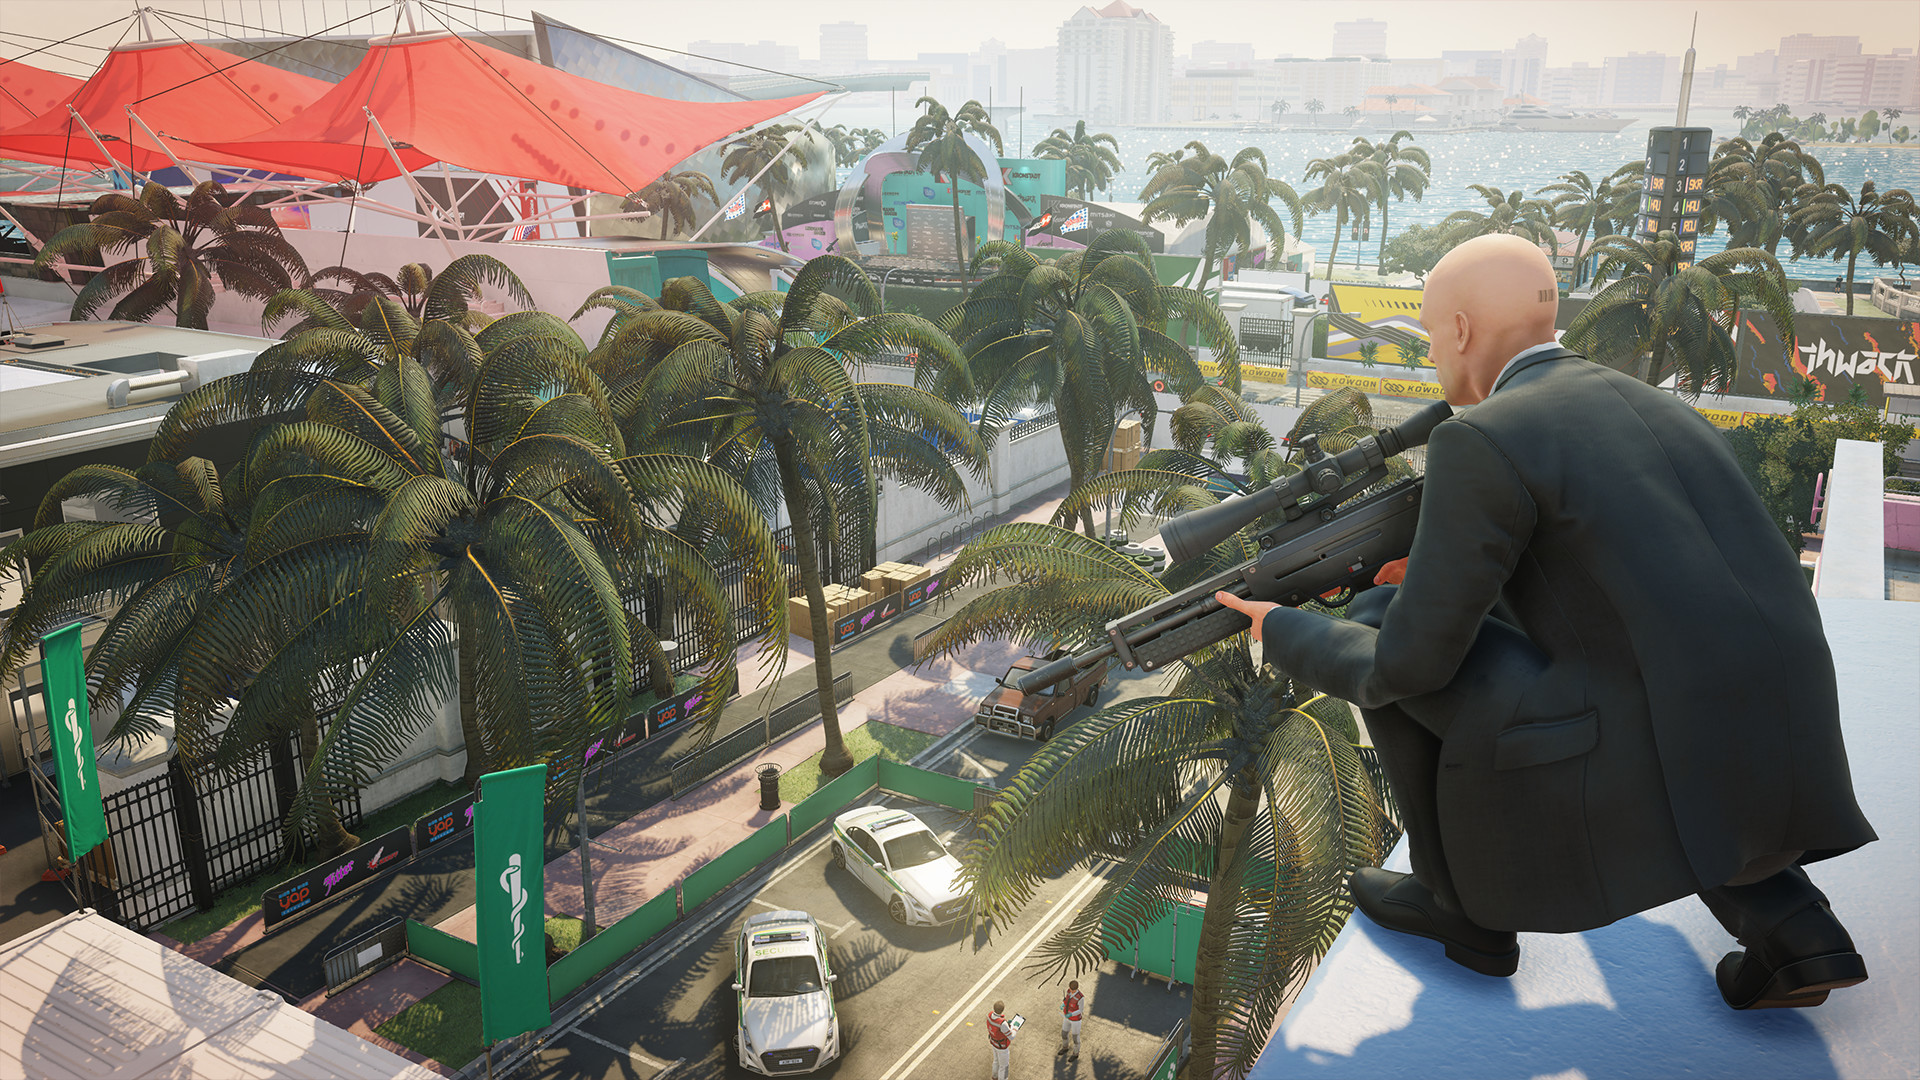 Hitman 2 announced for November, see the first trailer